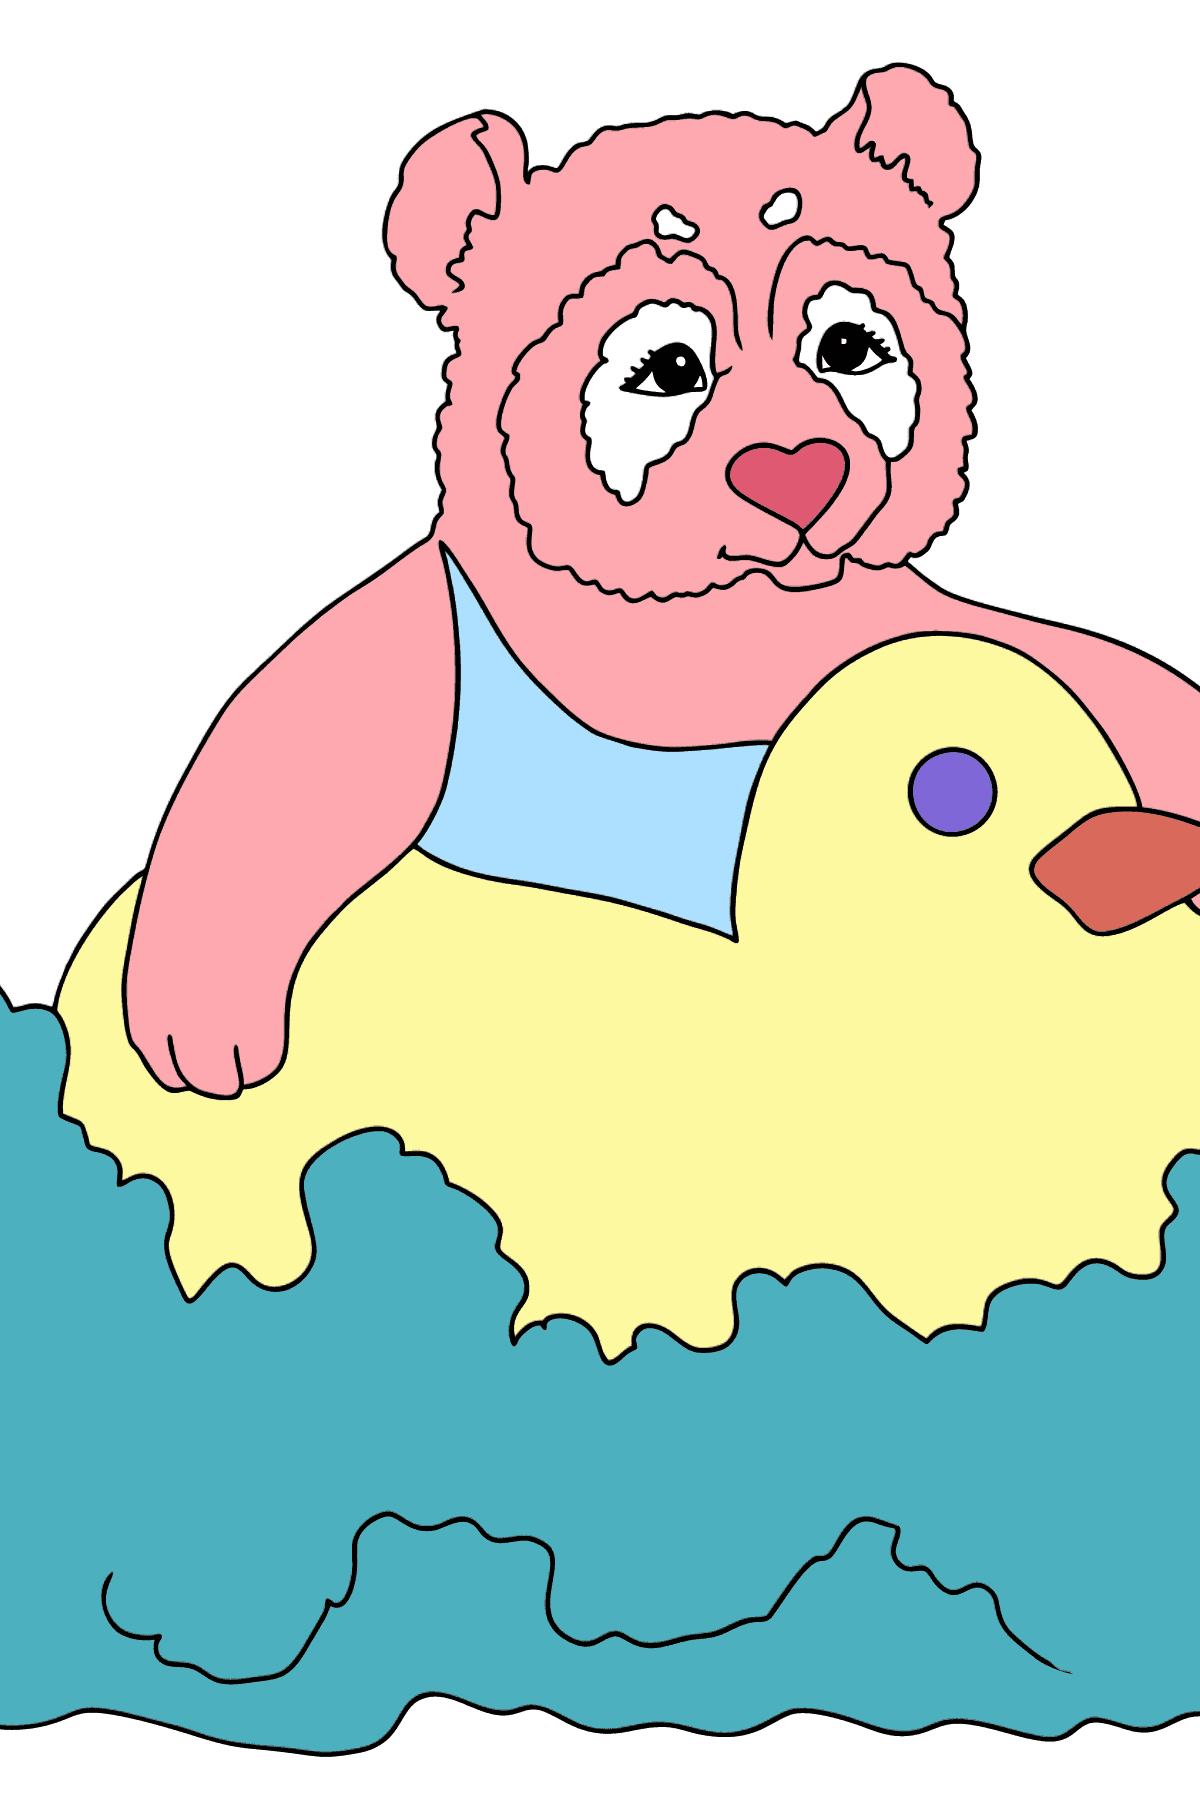 Coloring Picture - A Panda is Learning How to Swim - Coloring Pages for Kids